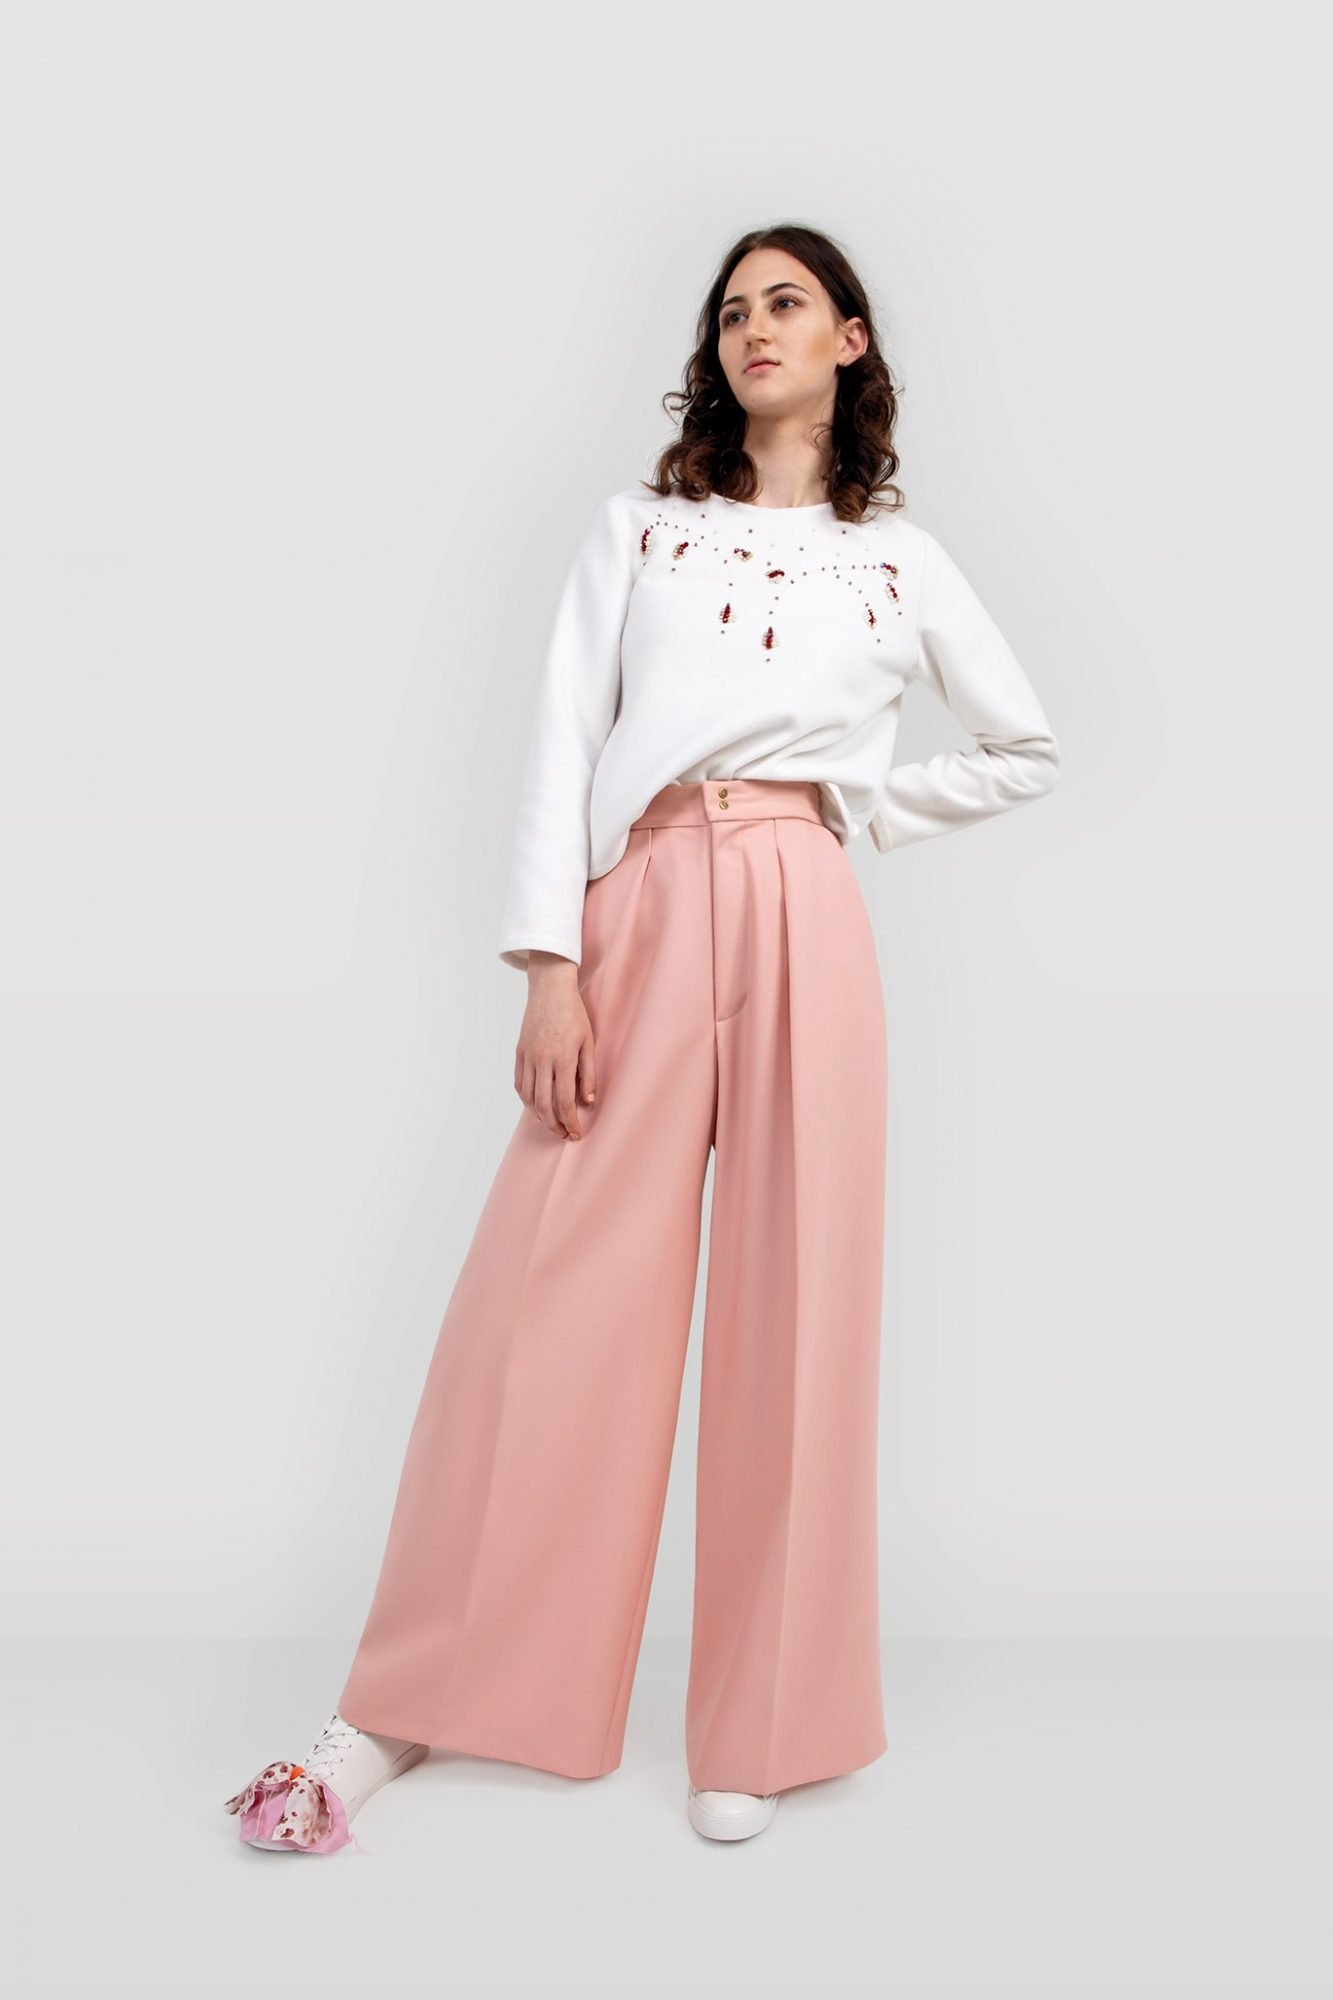 VALDONE Au - Front of the women's tailored suit trousers ALYSA. High-waisted trousers made from a blush pink wool fabric.